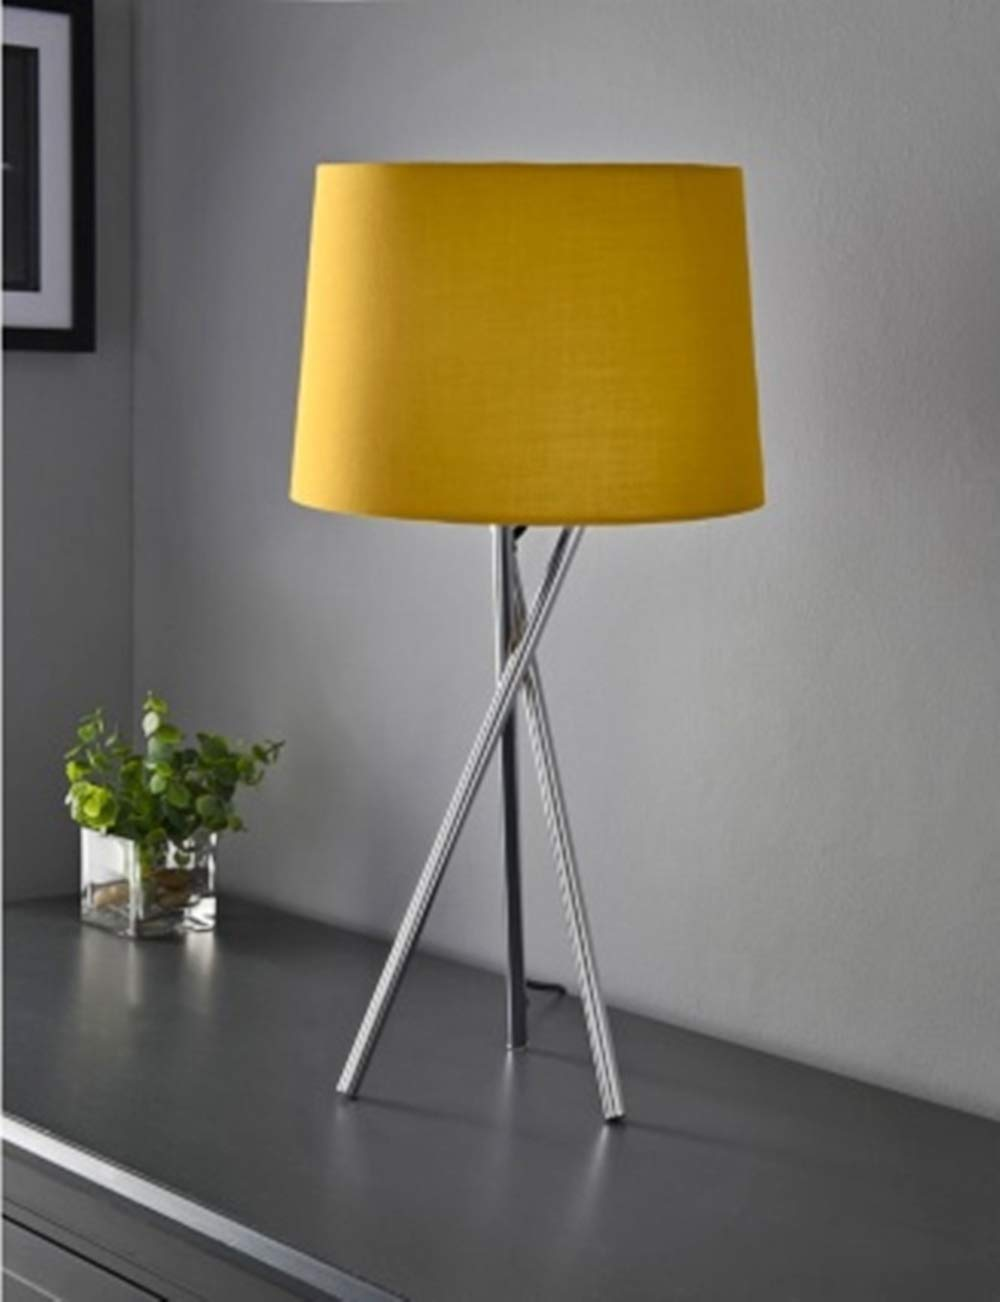 Vintage Tripod Design Table Lamp Give Your Home,Office,Living Room a Truly Contemporary Look Ochre